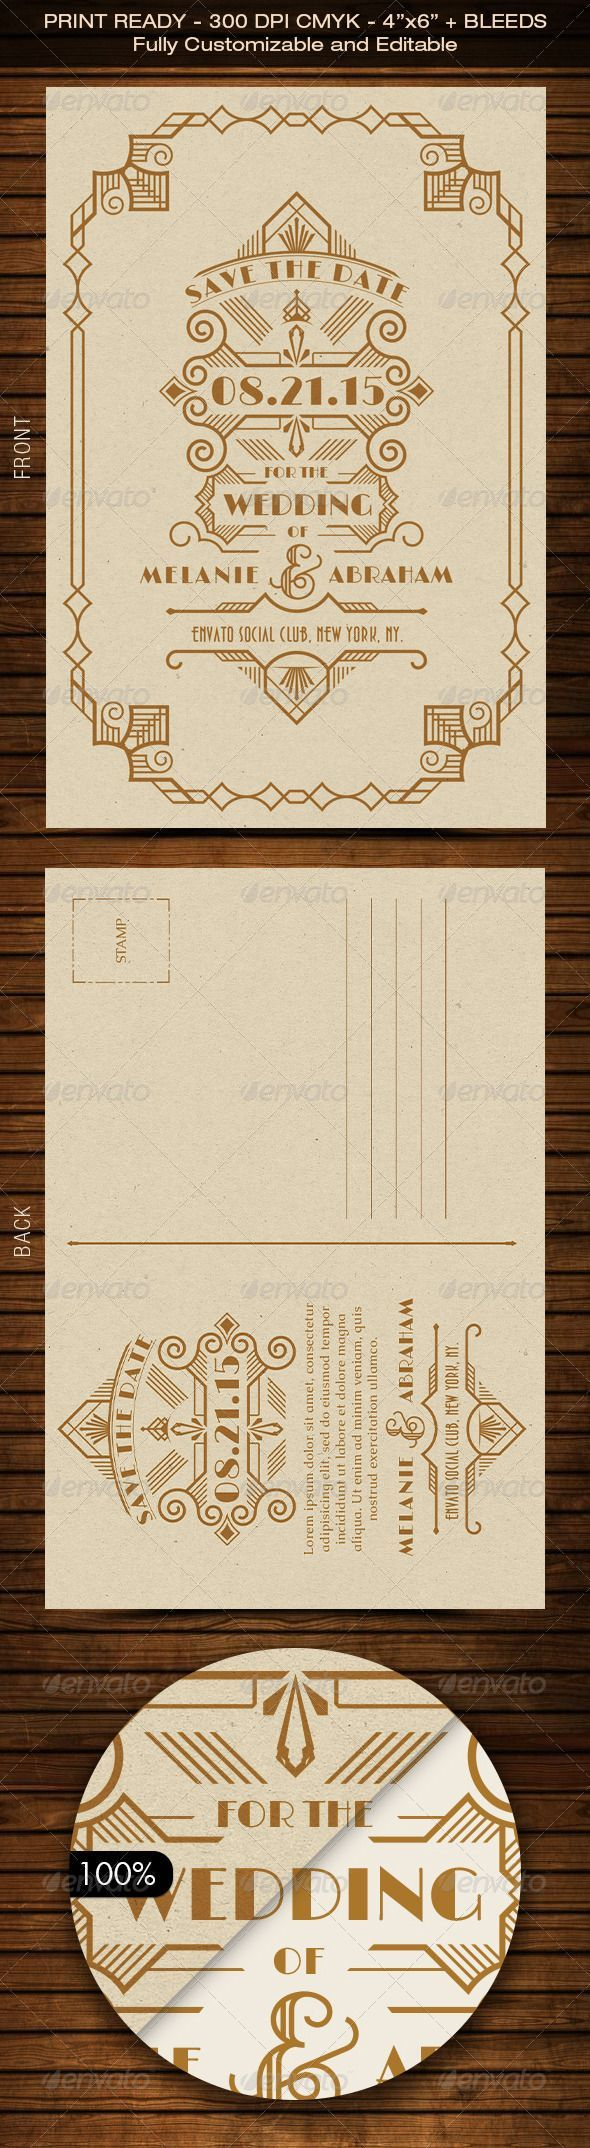 all ireland wedding invitations%0A Wedding Save the Date Post Card  Art Deco    by Size  Bleed Area   Resolution      dpi Color Representation  CMYK Easily change all colors